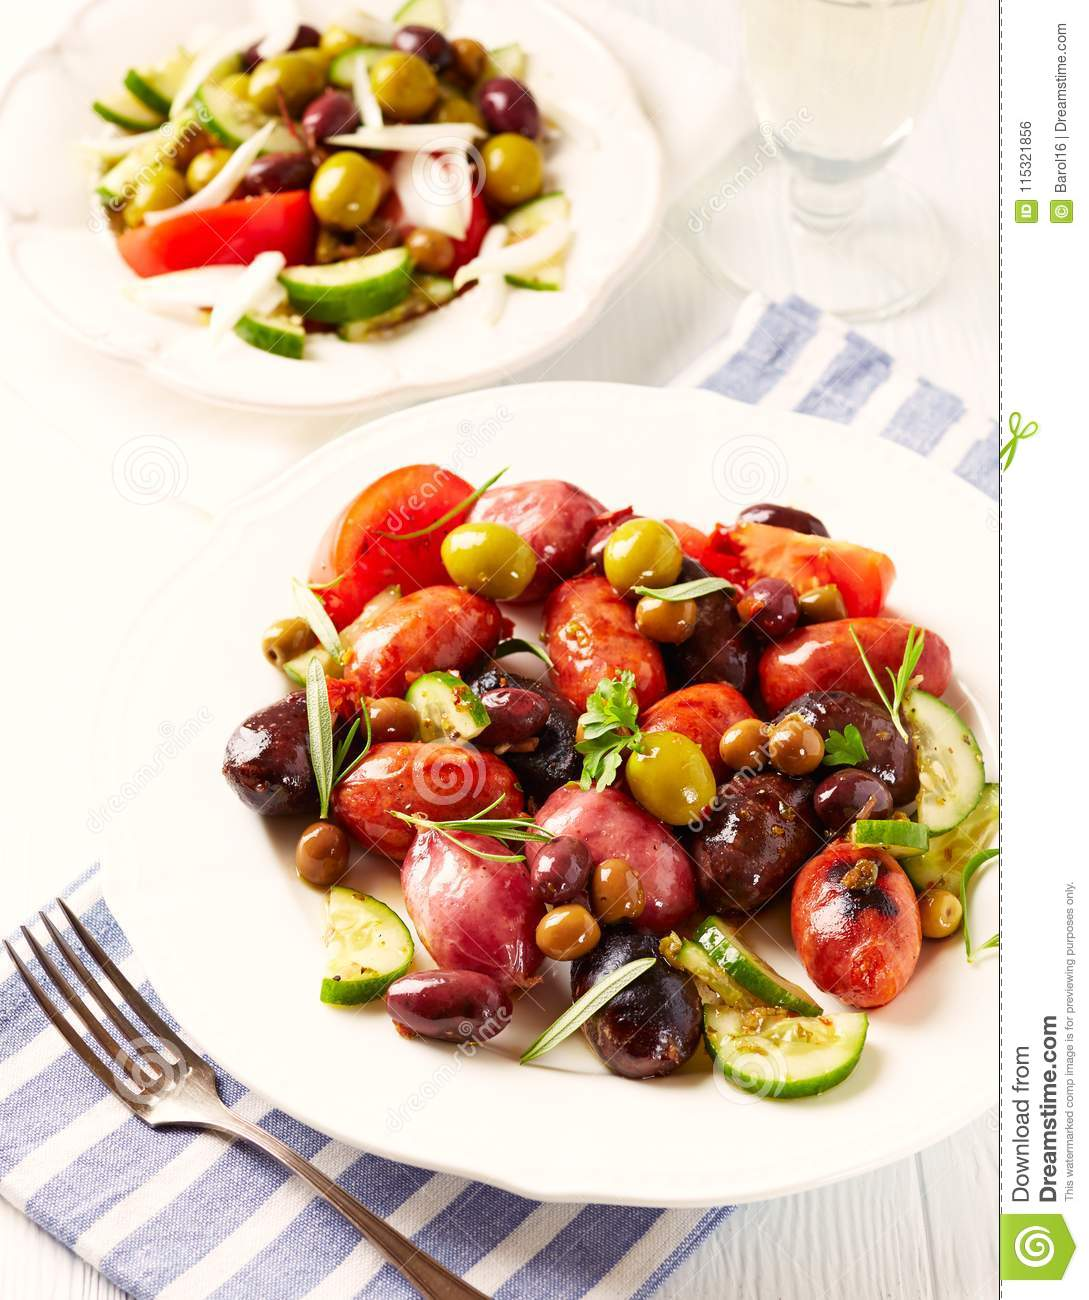 Spanish sausage with tomatoes, cucumber and different marinated olives